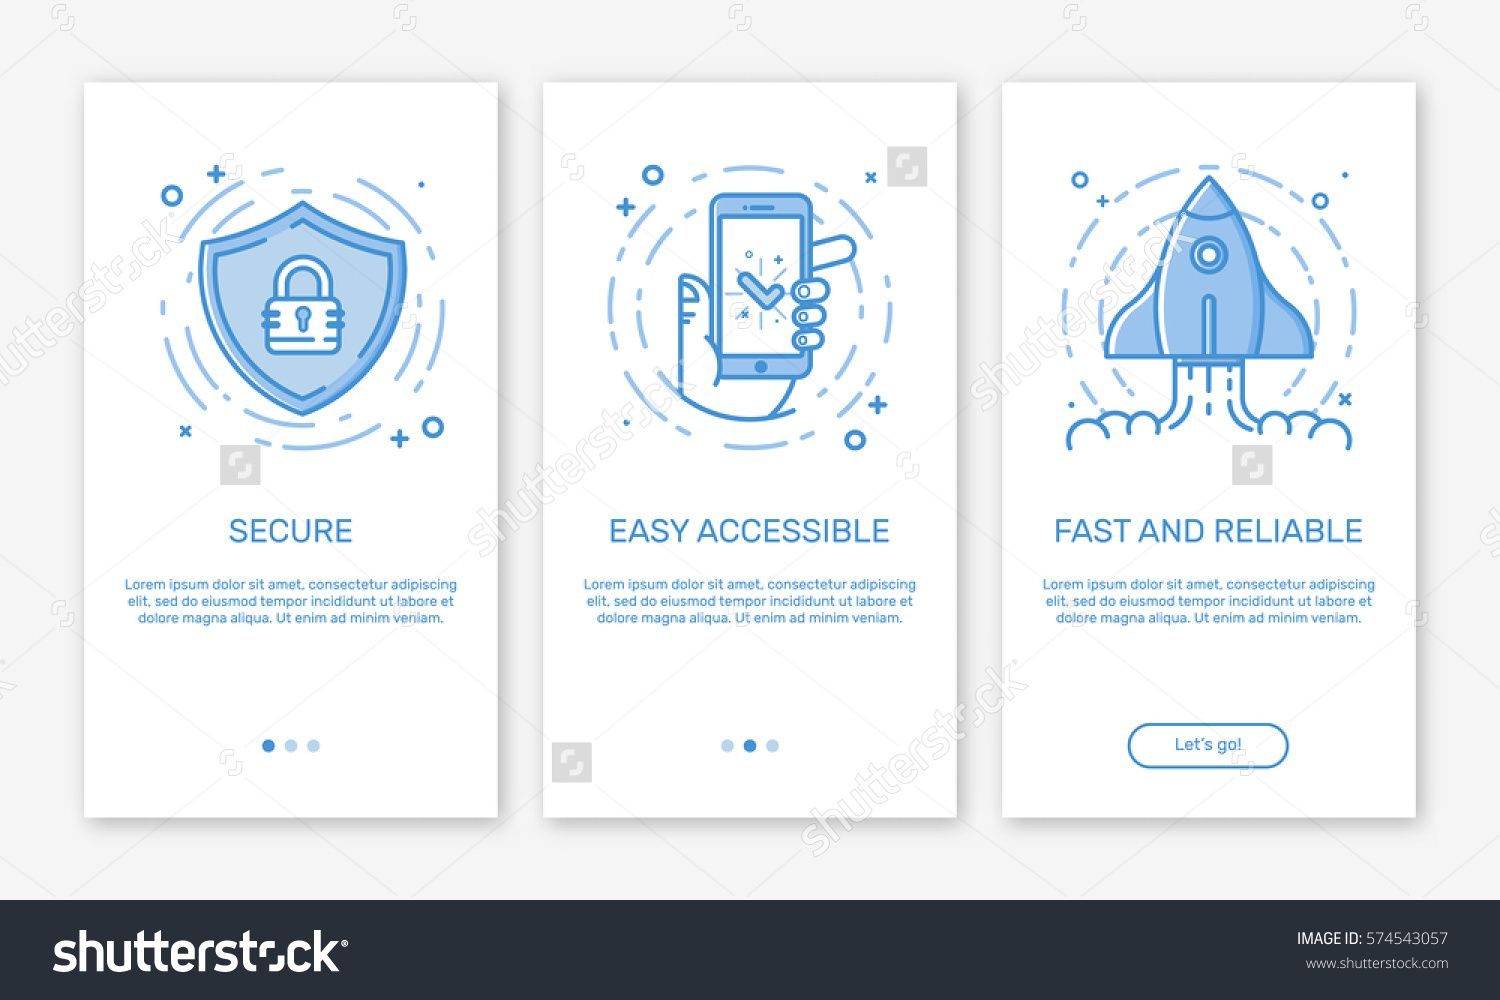 Vector Illustration of onboarding app screens and web